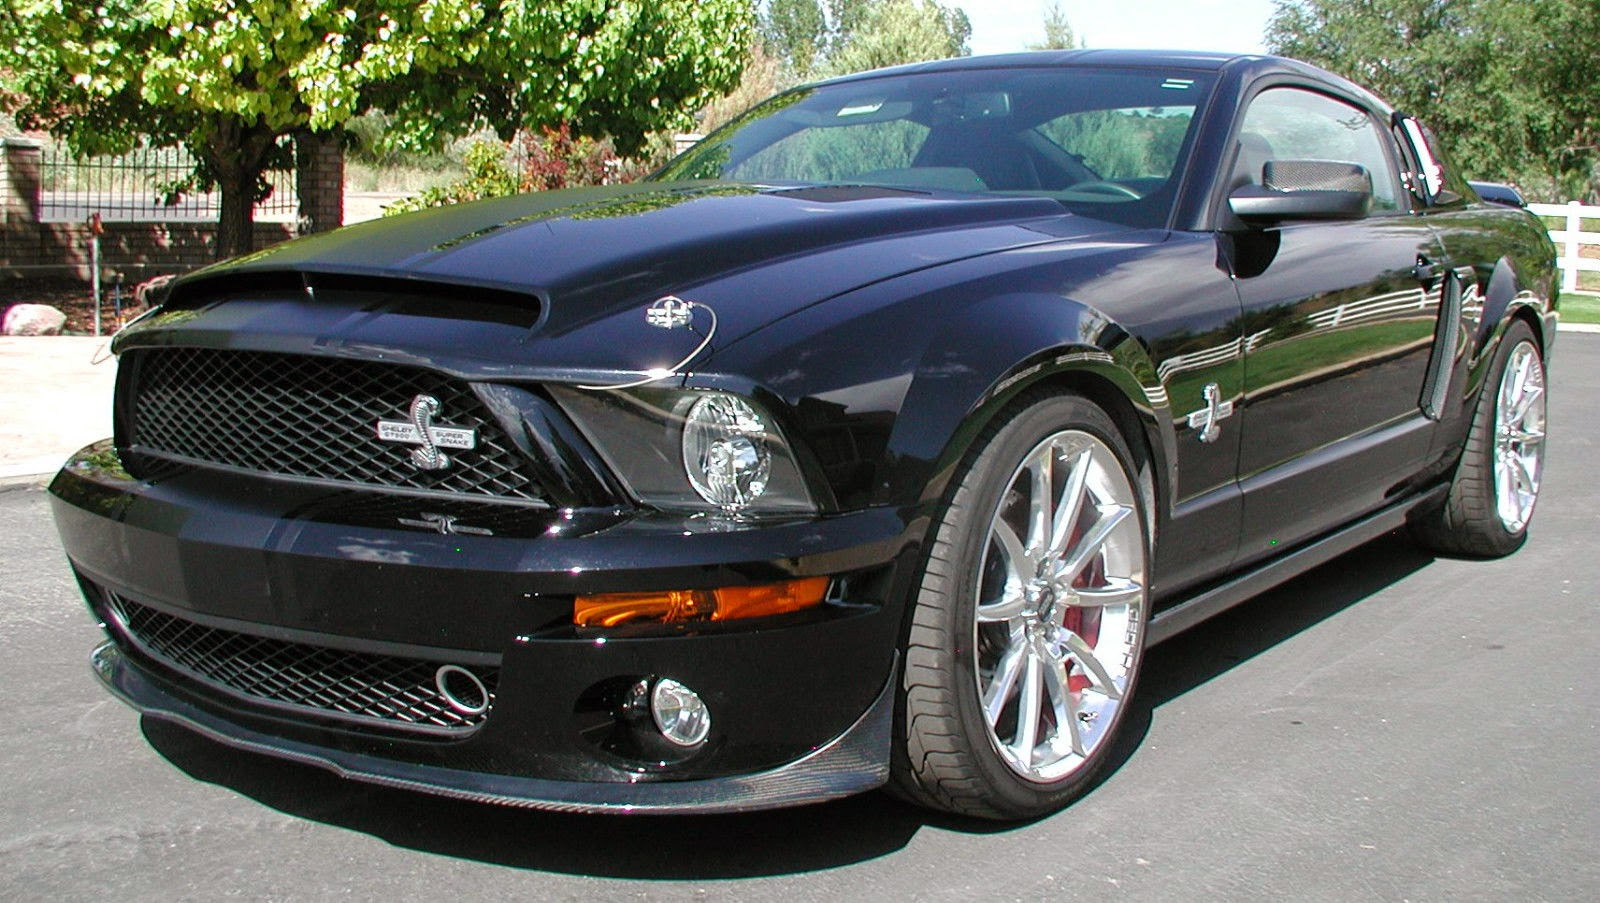 2008 ford mustang shelby gt500 for sale american muscle cars. Black Bedroom Furniture Sets. Home Design Ideas